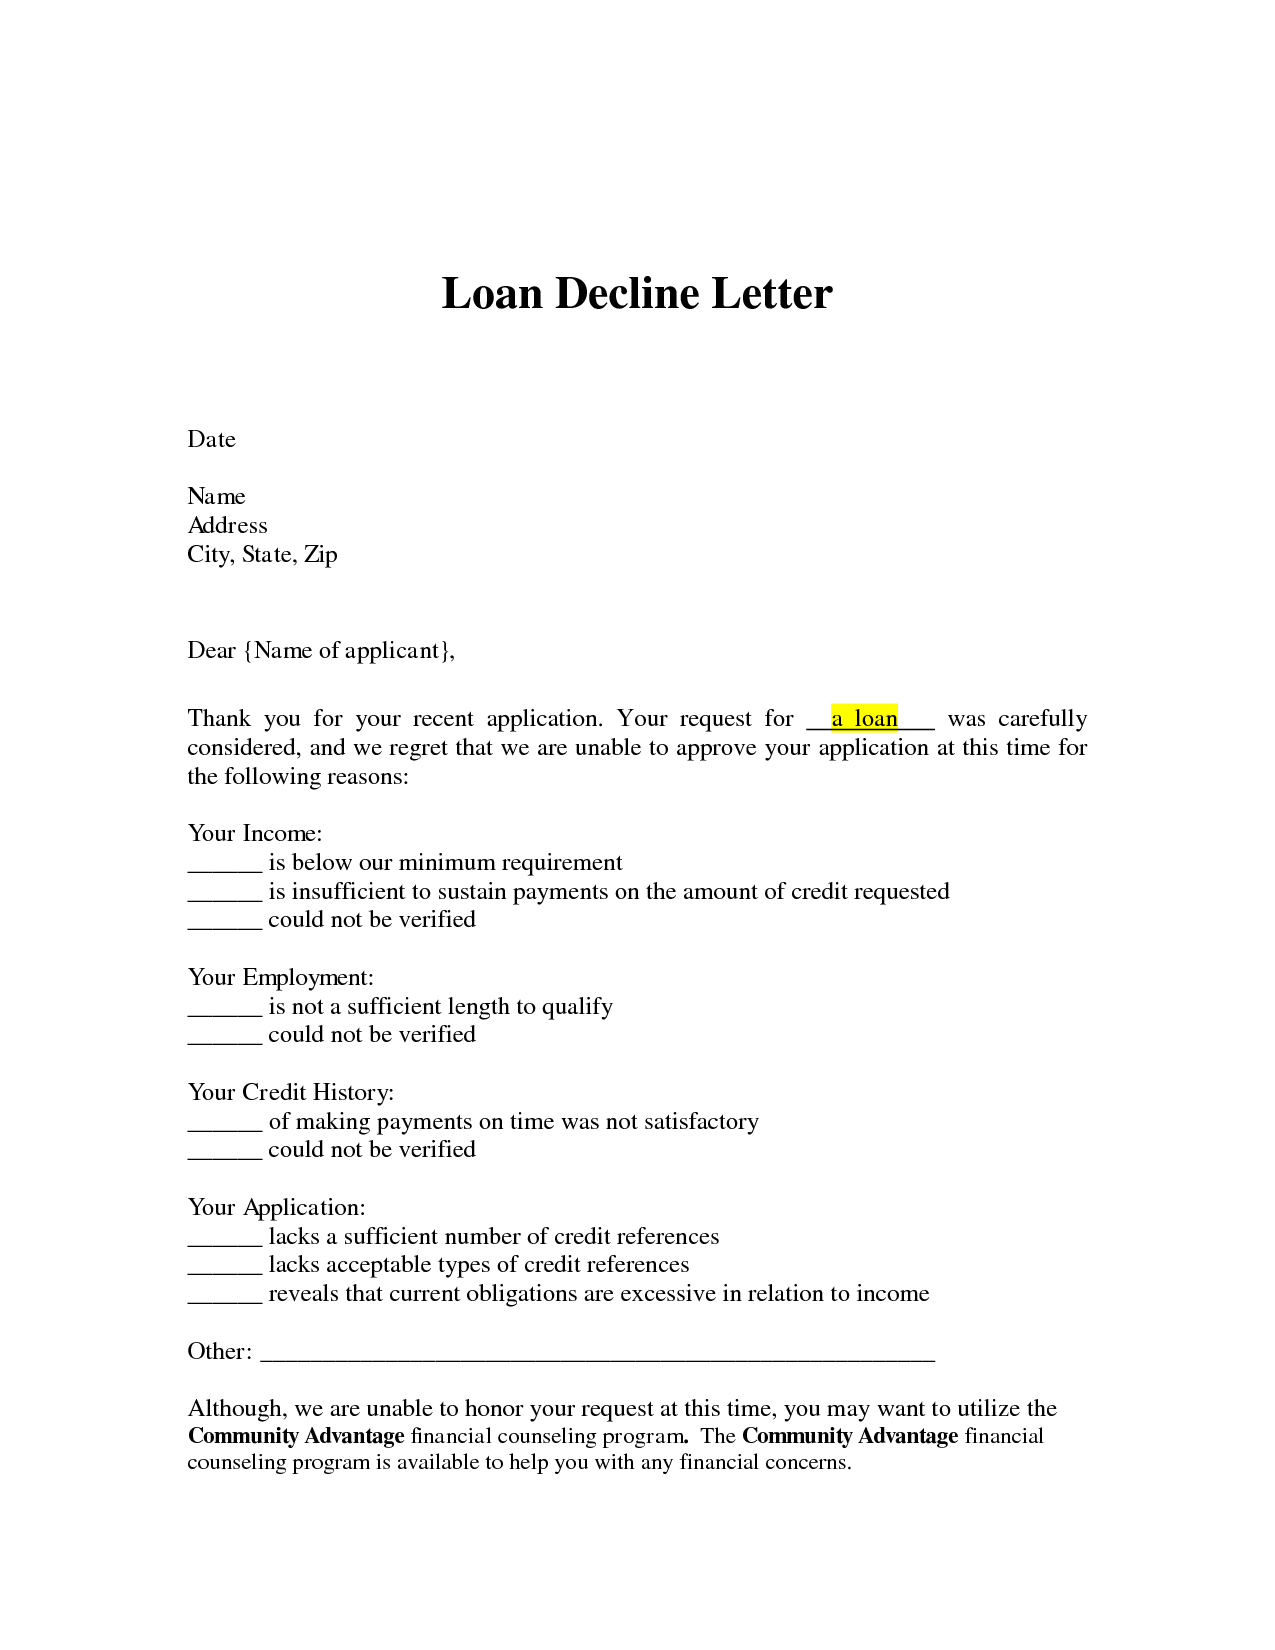 decline letter sample